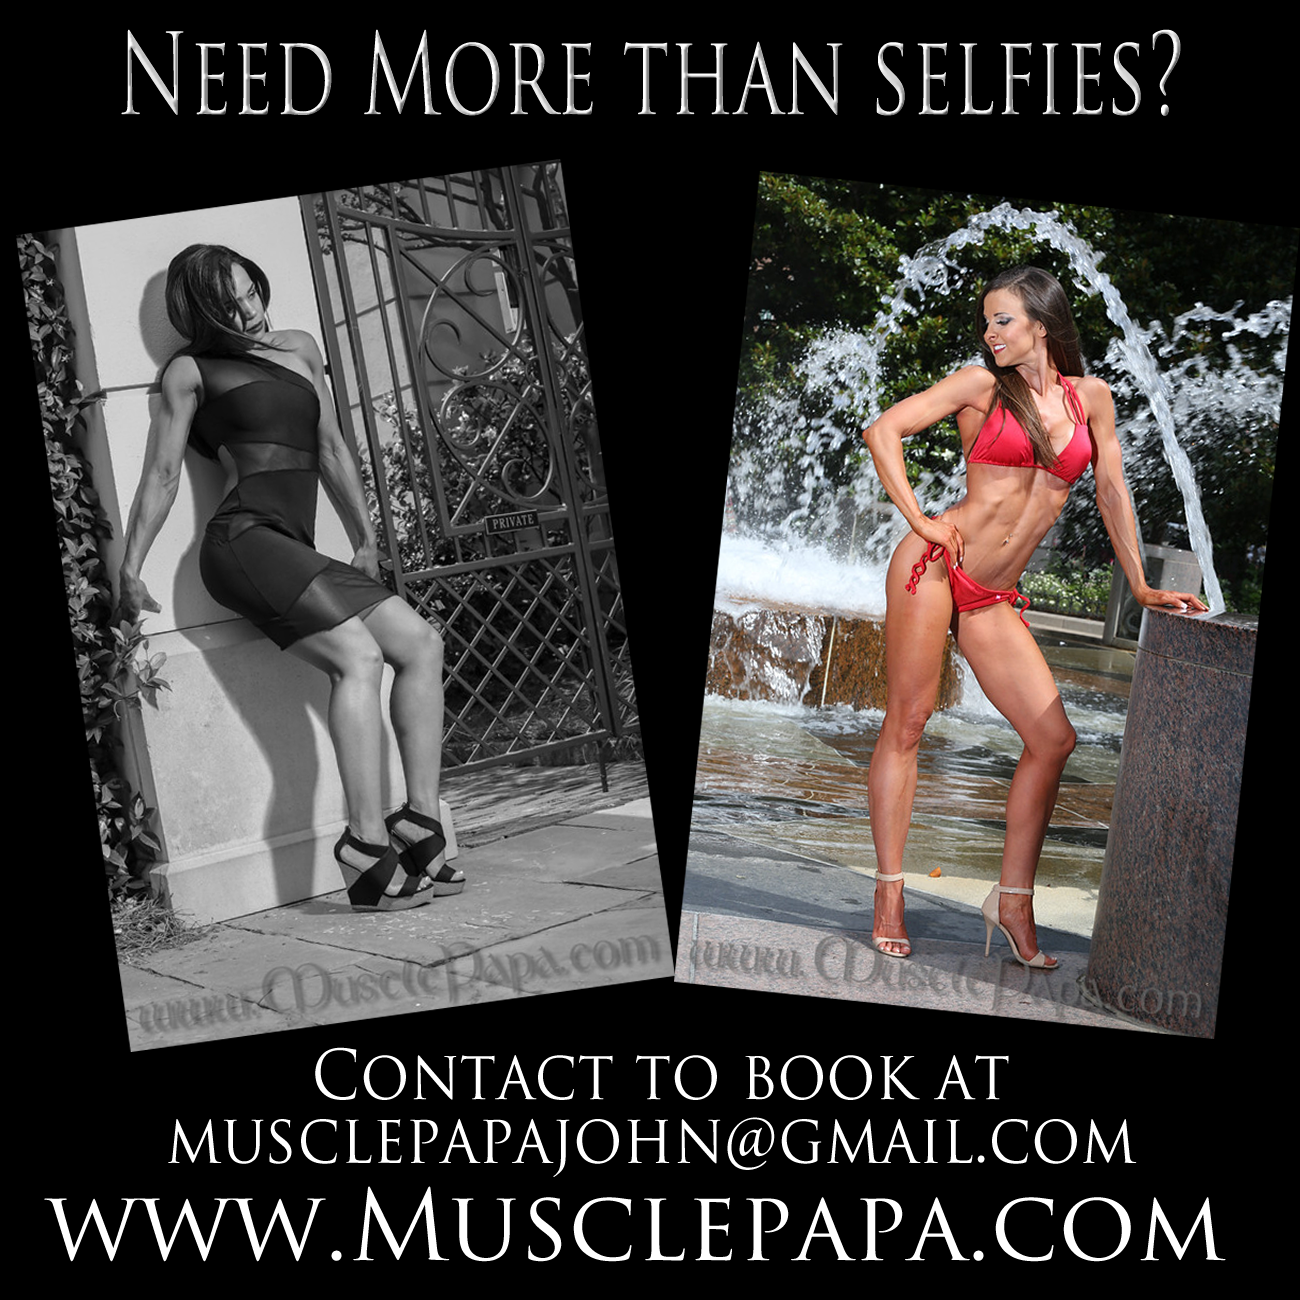 Book Your Shoot Today!